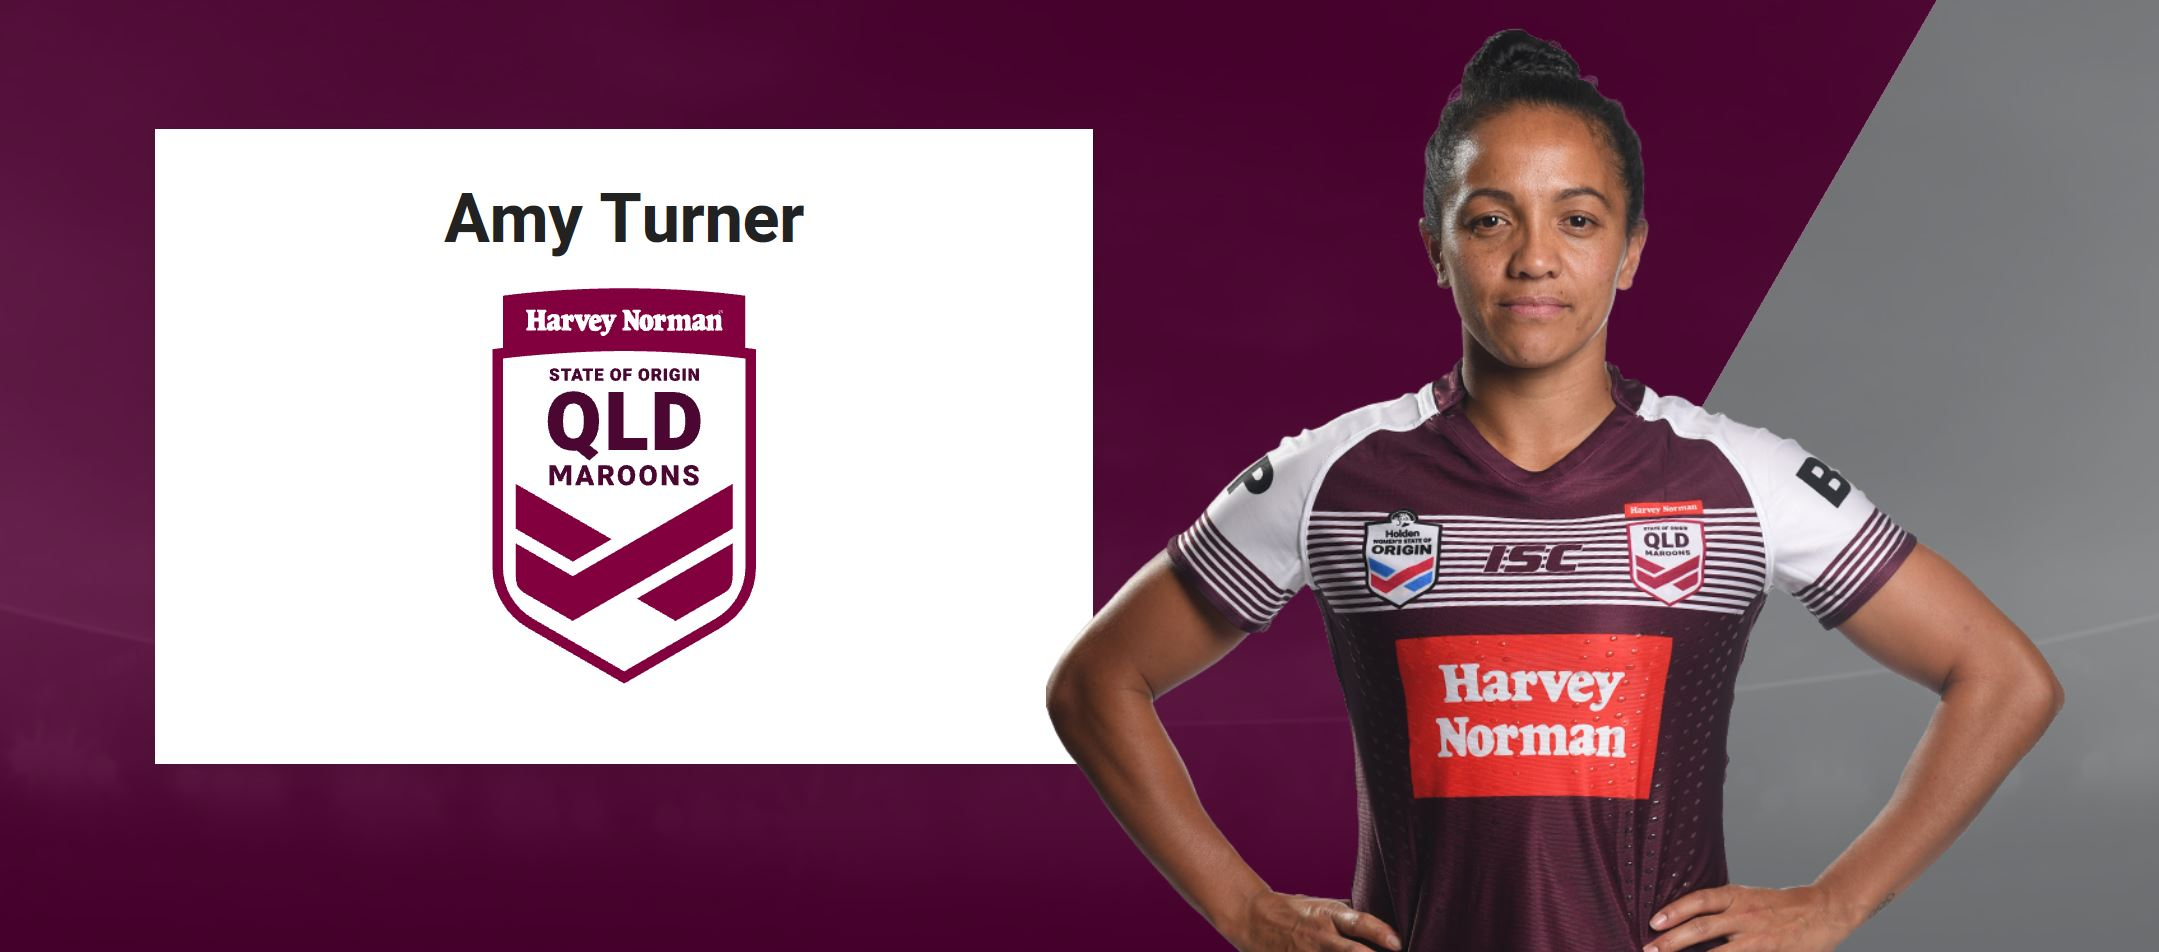 Amy Turner State of Origin June 2019.JPG